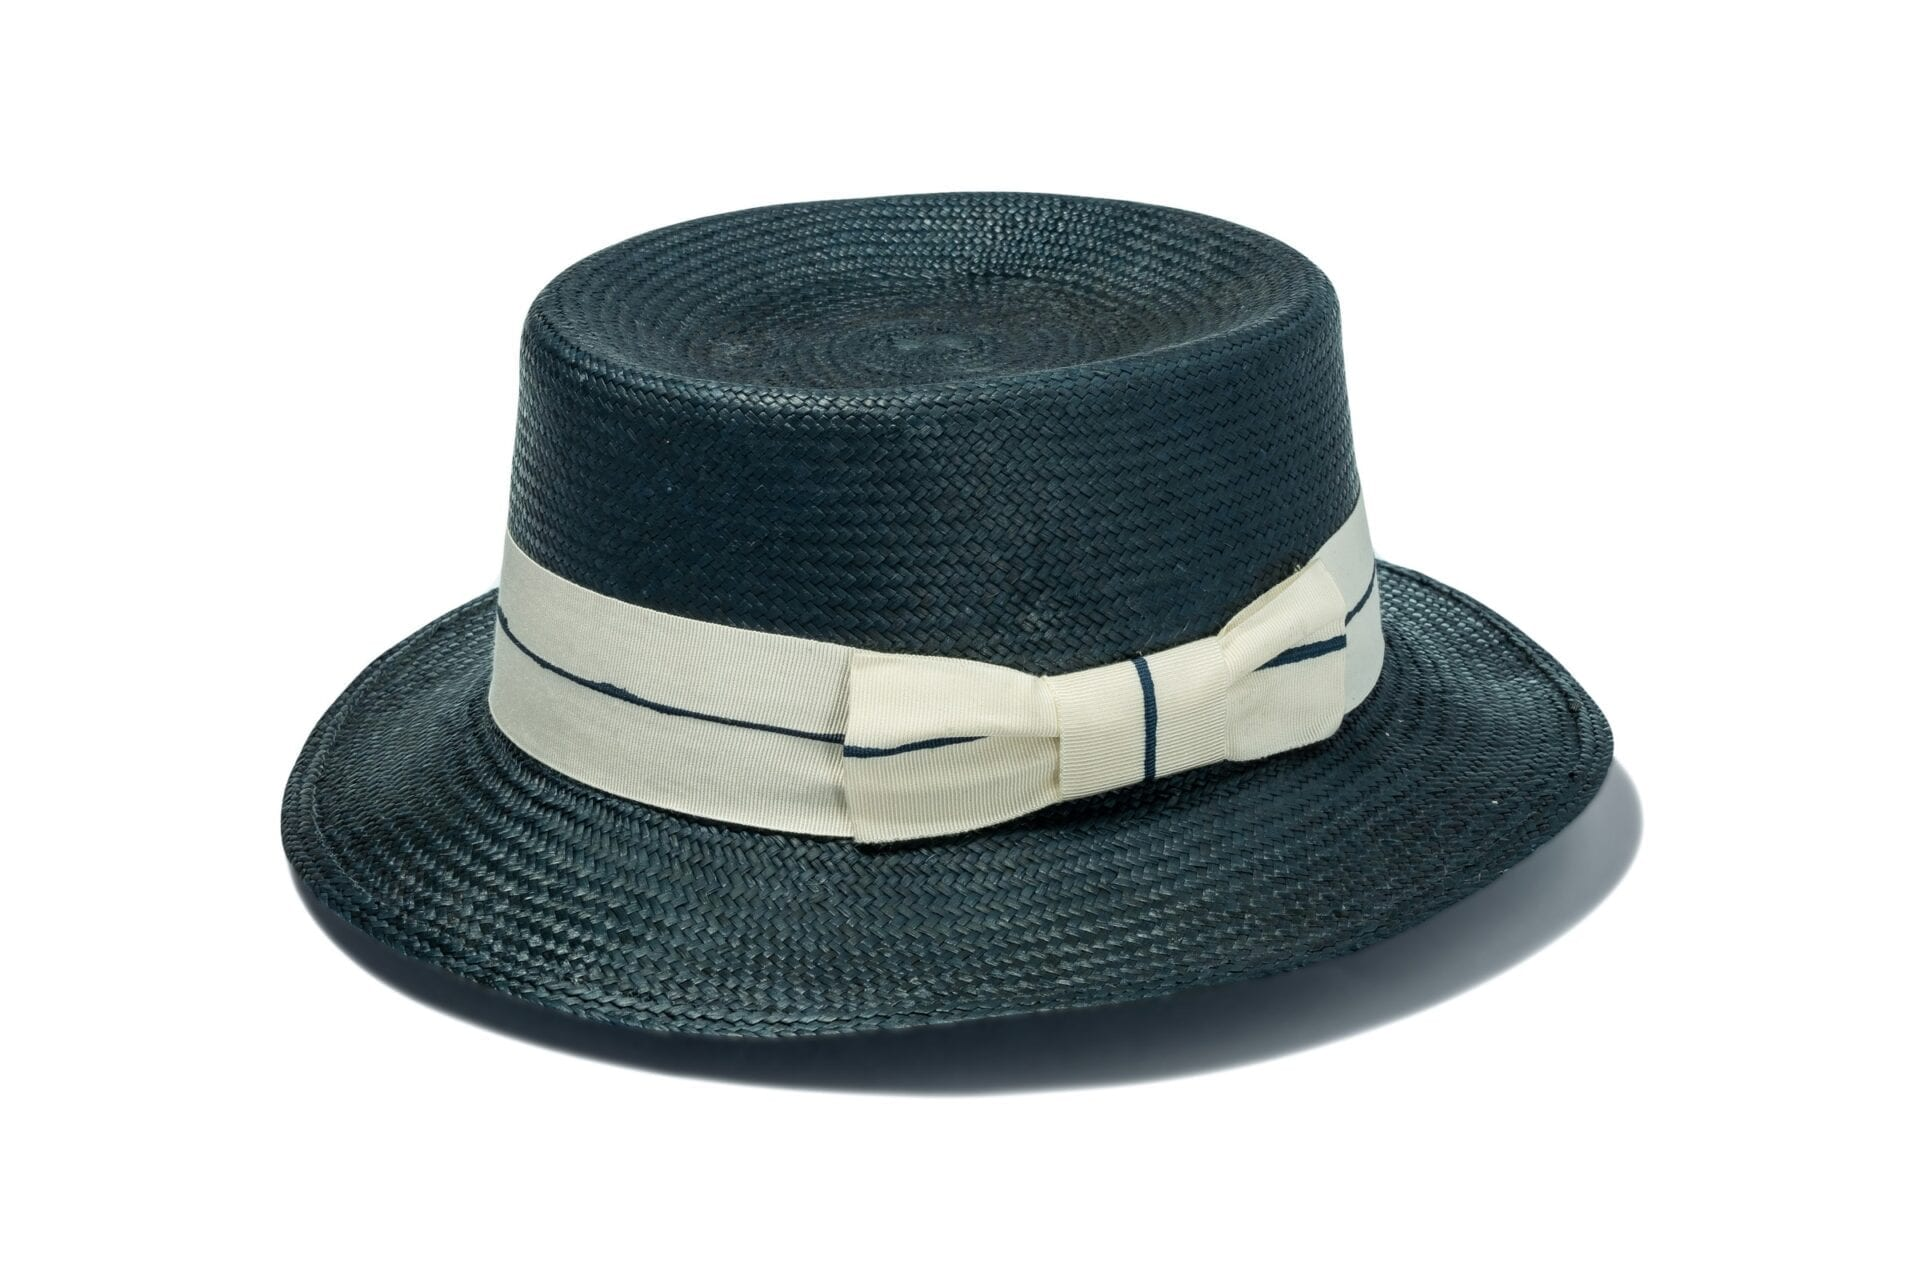 Chic_Cambridge_womens_black_straw_hat